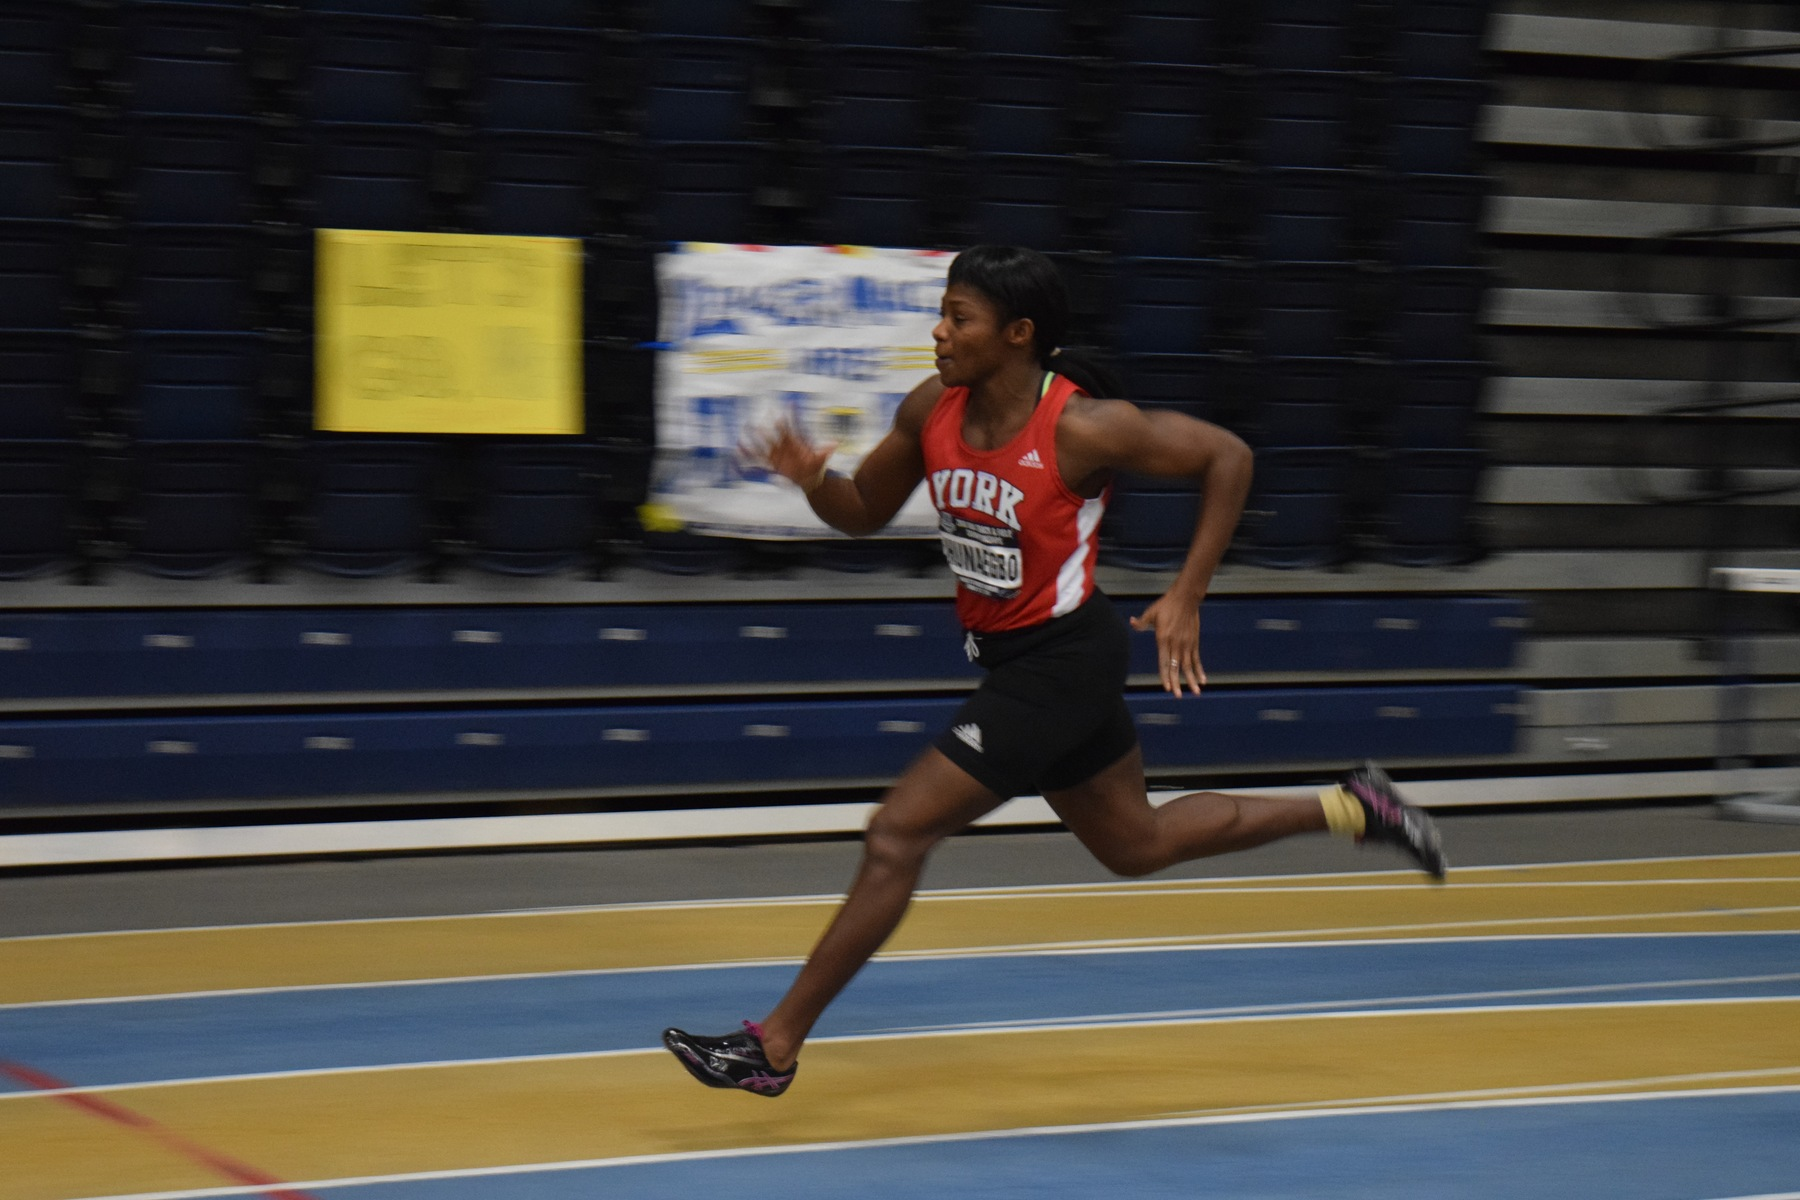 Throughout the year Ihunaegbo finds herself balancing being a mother, a full-time fourth year student studying kinesiology and health sciences, a 400-metre runner for the York Lions, while also holding down a job to support her family.